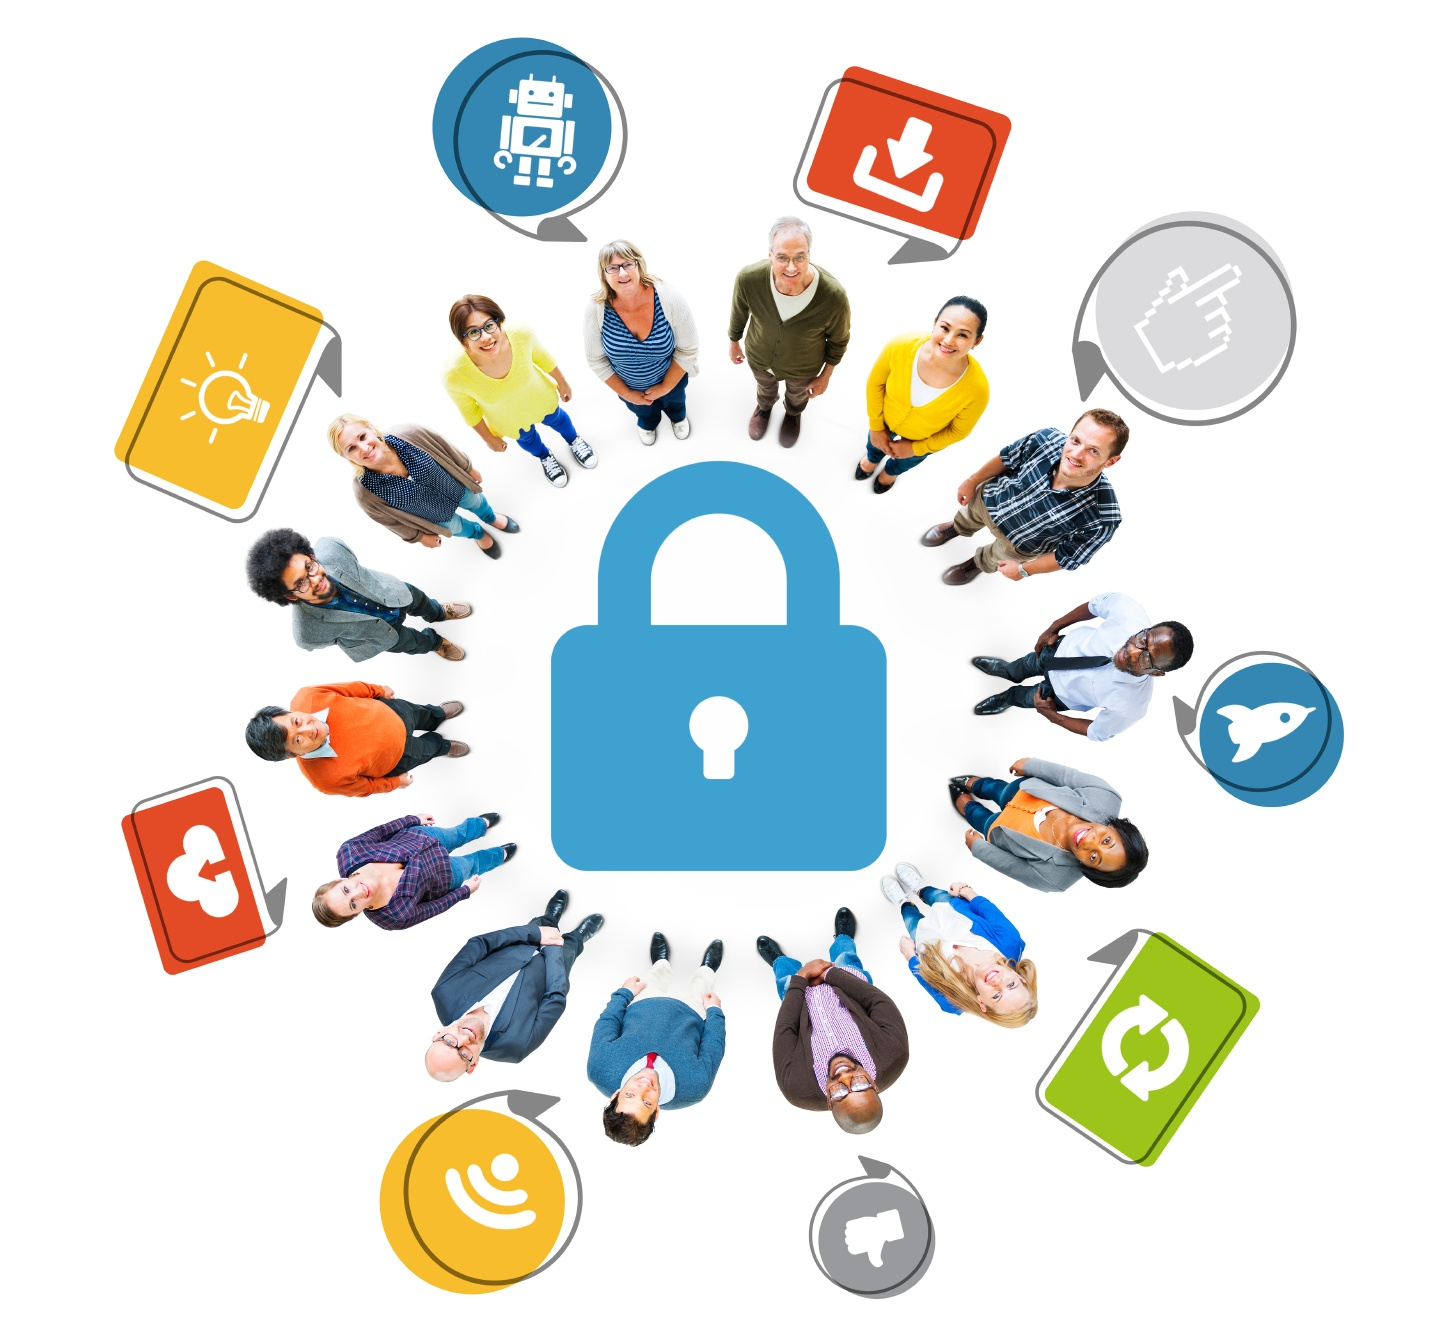 Abt Security Recommendations Social Networking Safety In